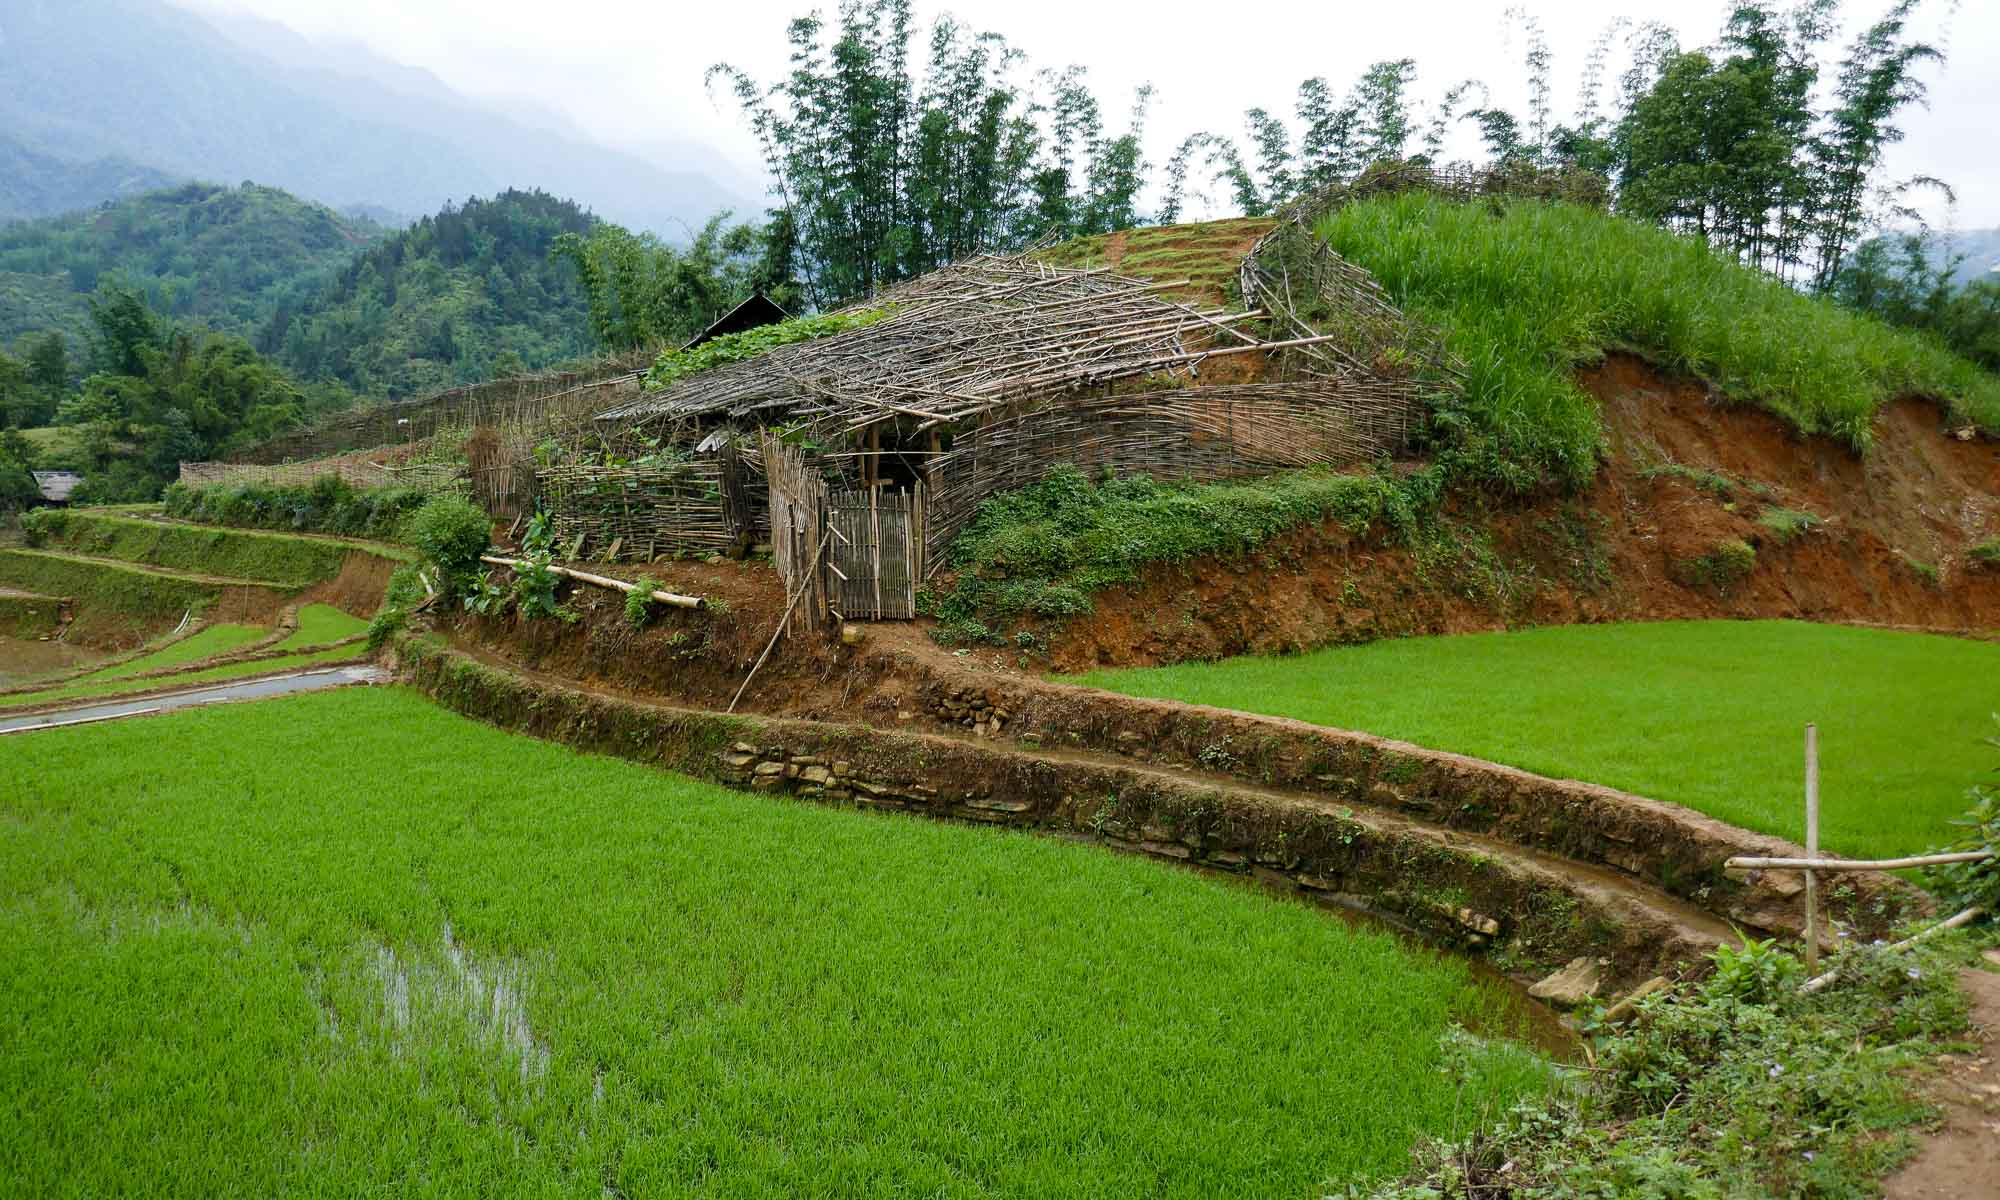 More rice terraces on the way to Lao Chai